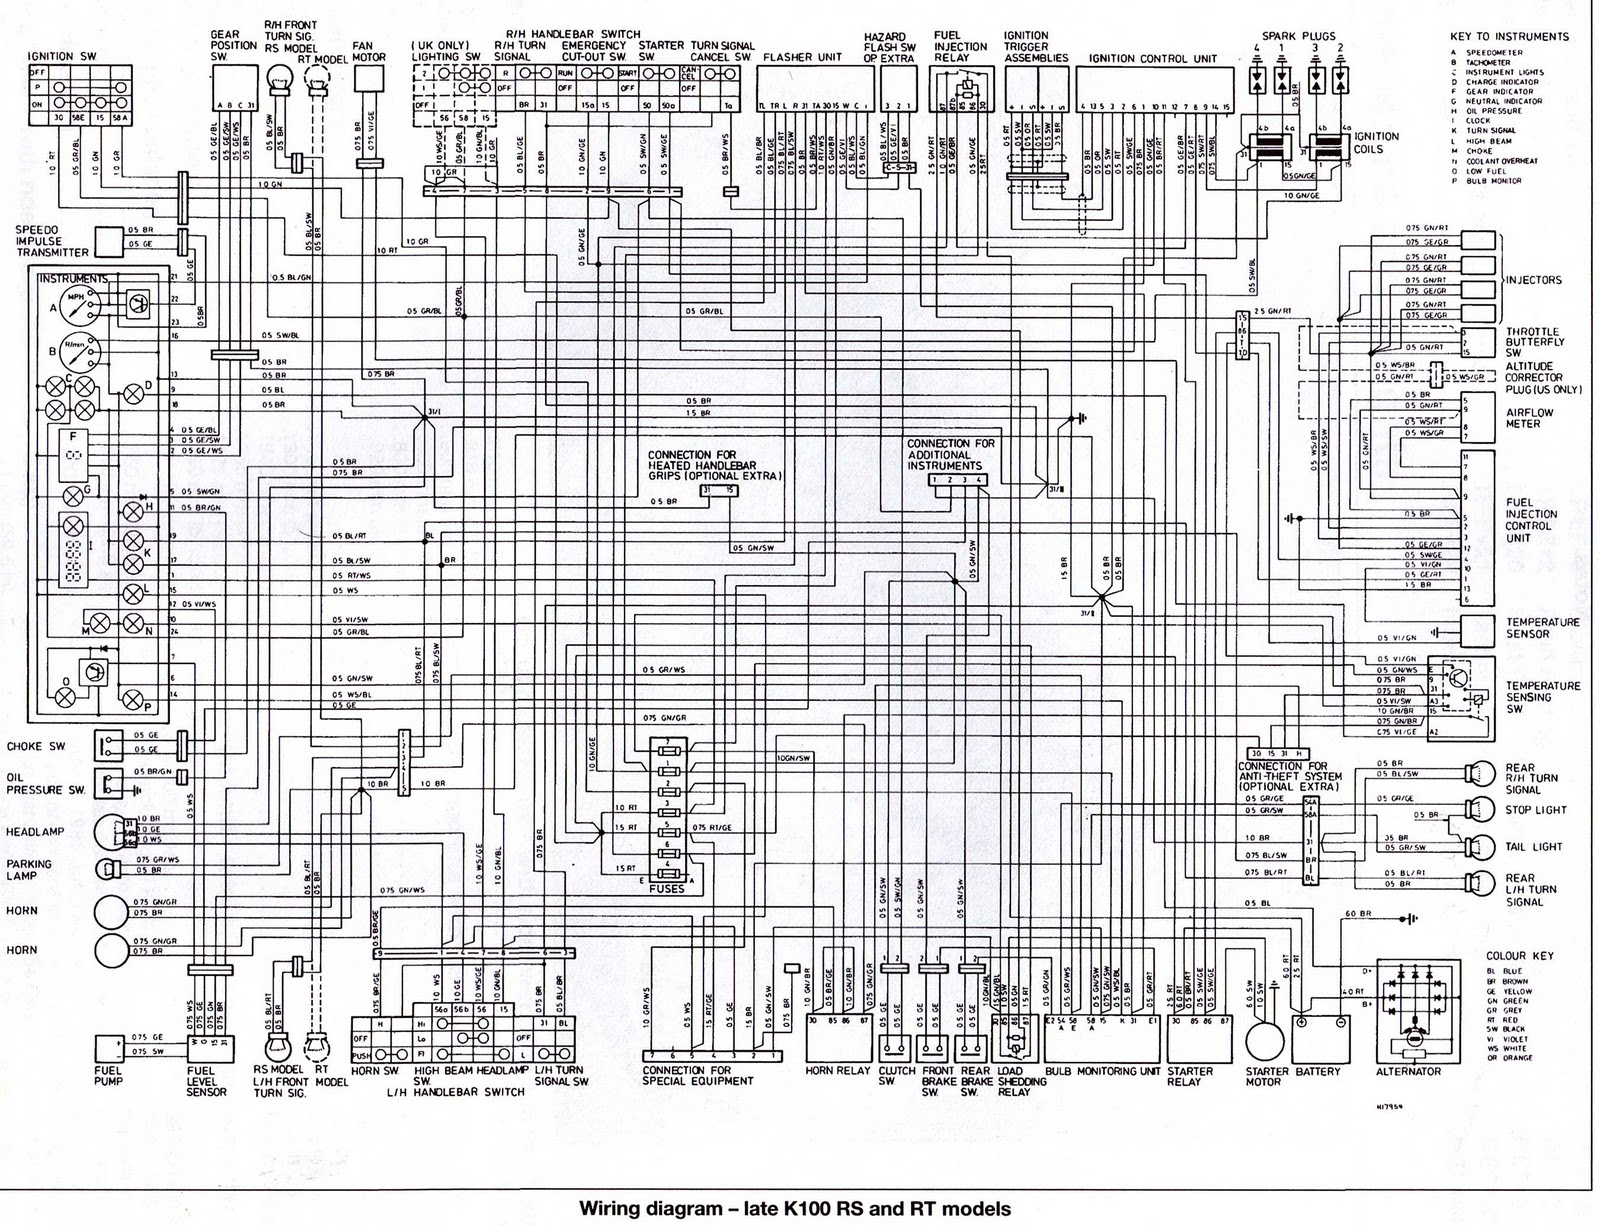 BMW+KR100RS RT+Wiring+Diagram bmw wiring diagram bmw r100rs gauge wiring diagram at pacquiaovsvargaslive.co